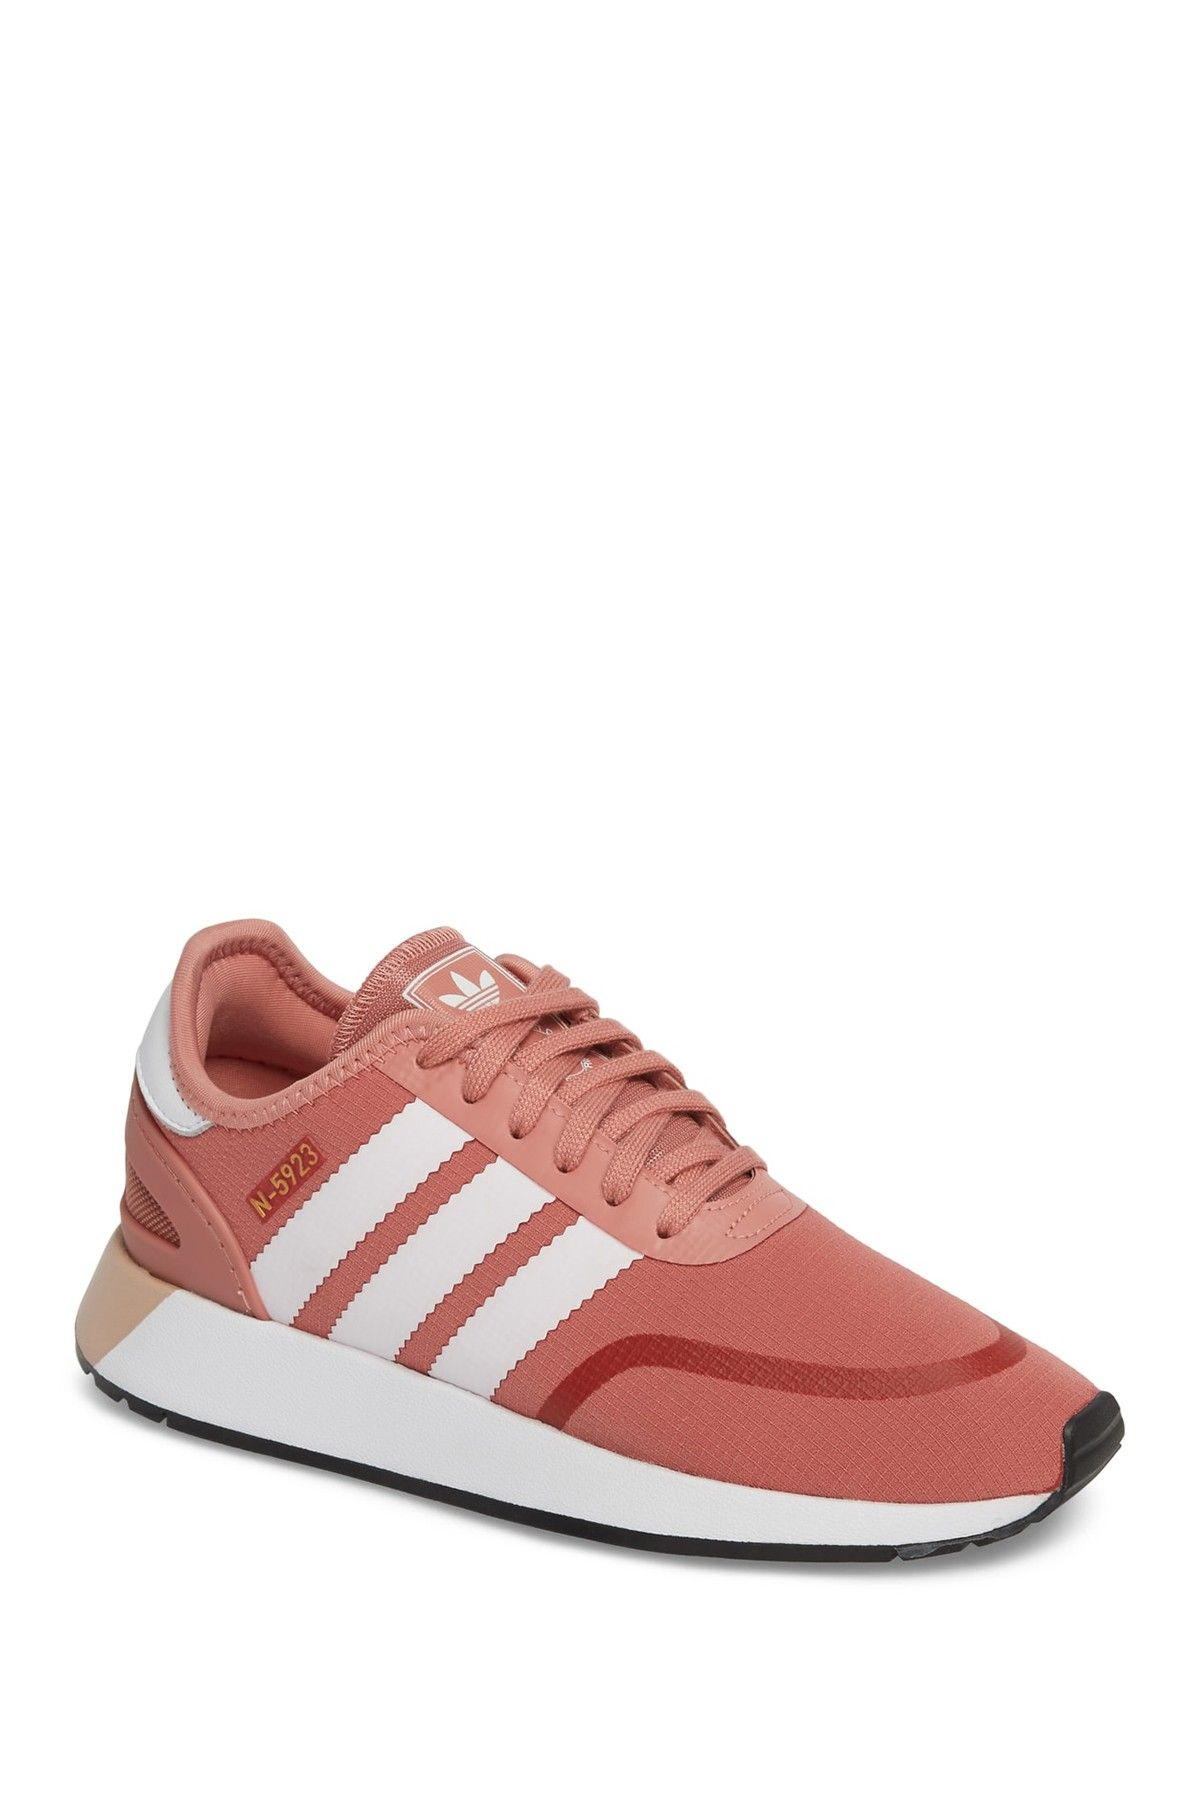 48952279e49 adidas - N-5923 Sneaker is now 40% off. Free Shipping on orders over  100.